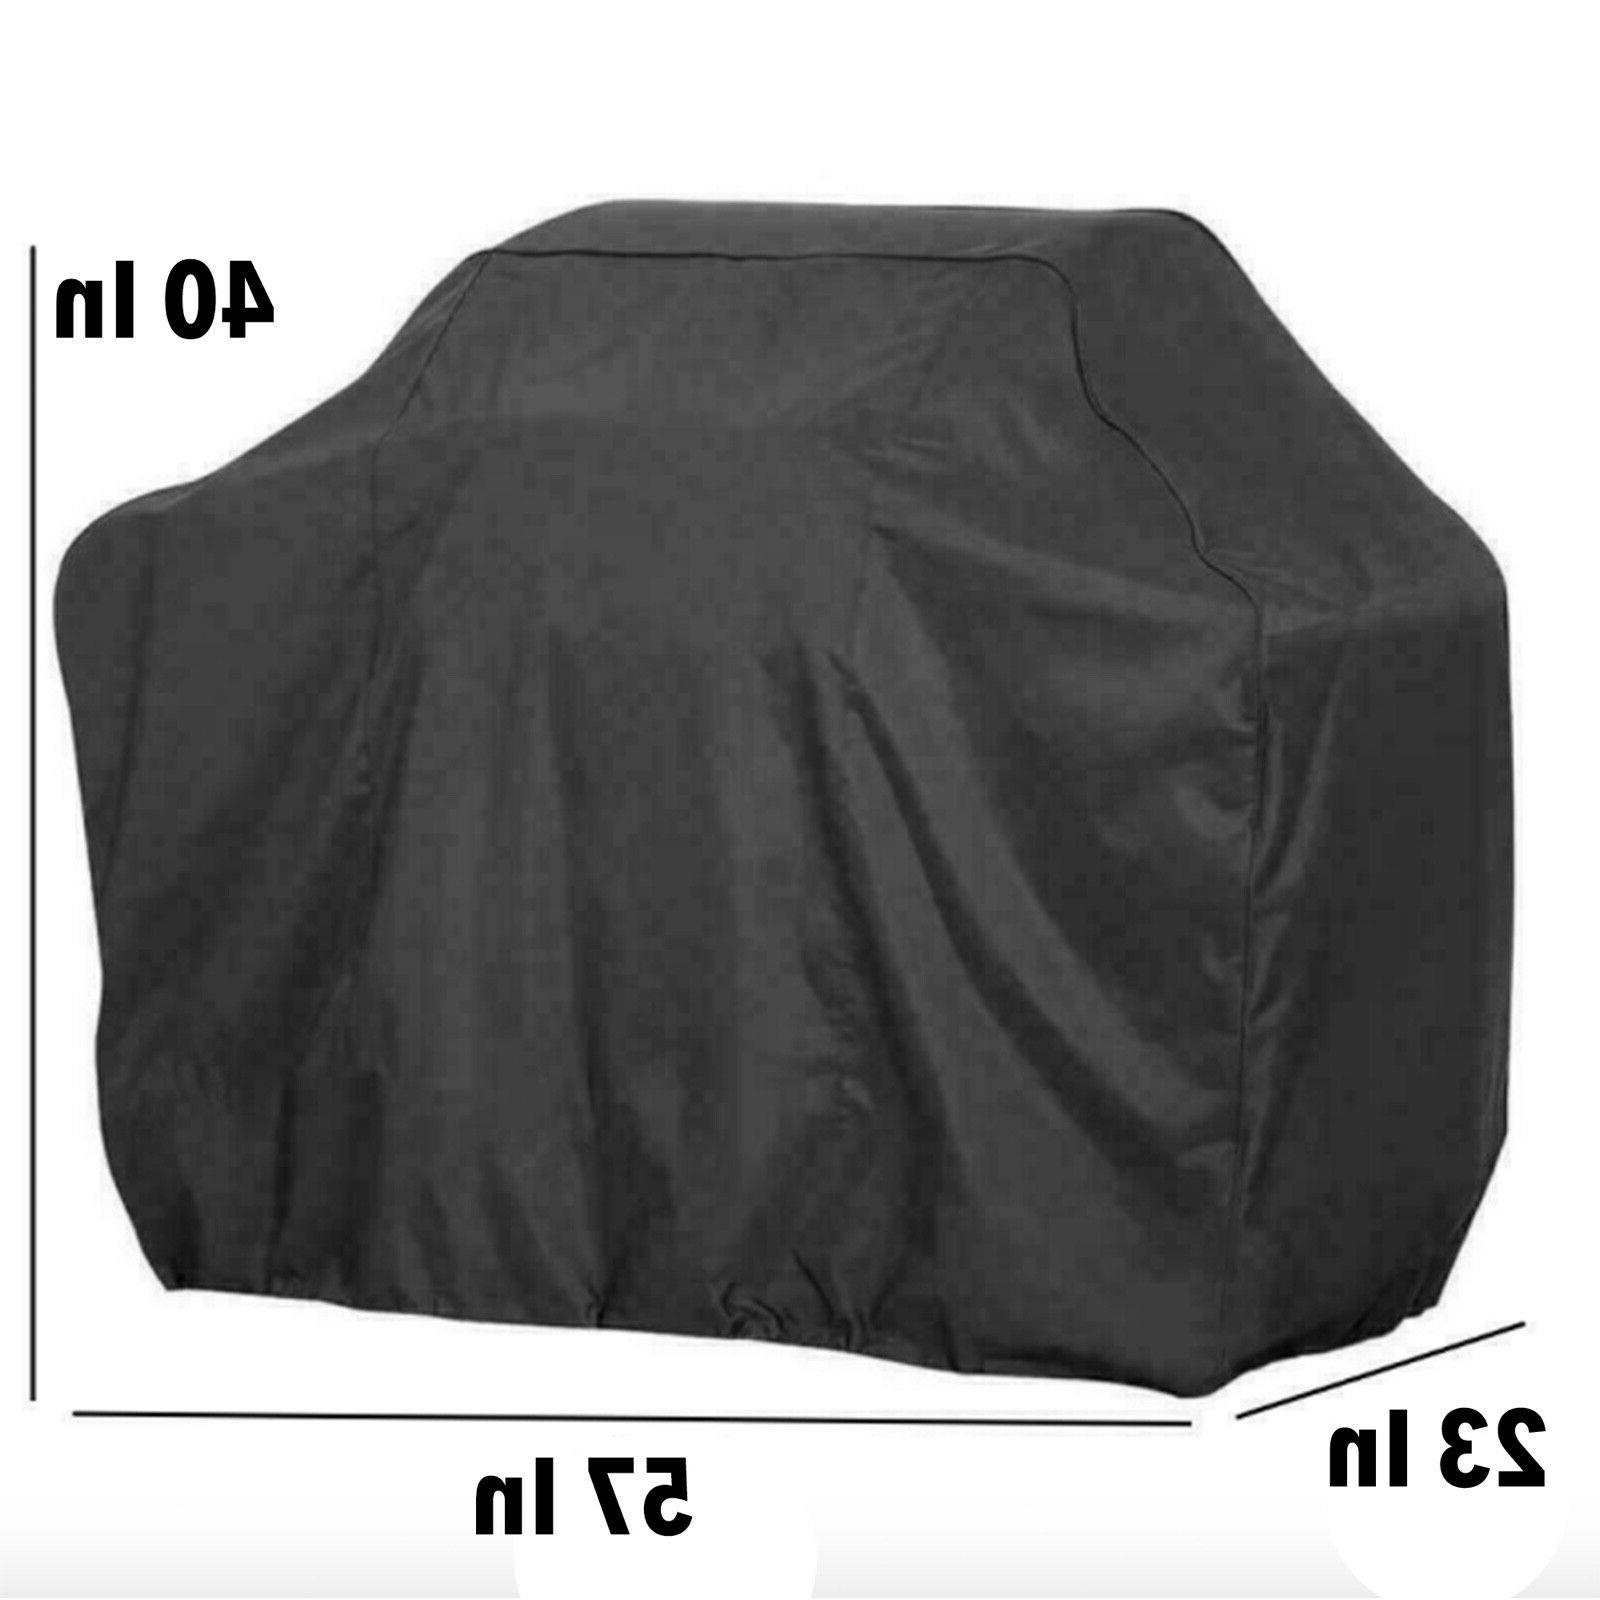 weber bbq gas grill cover